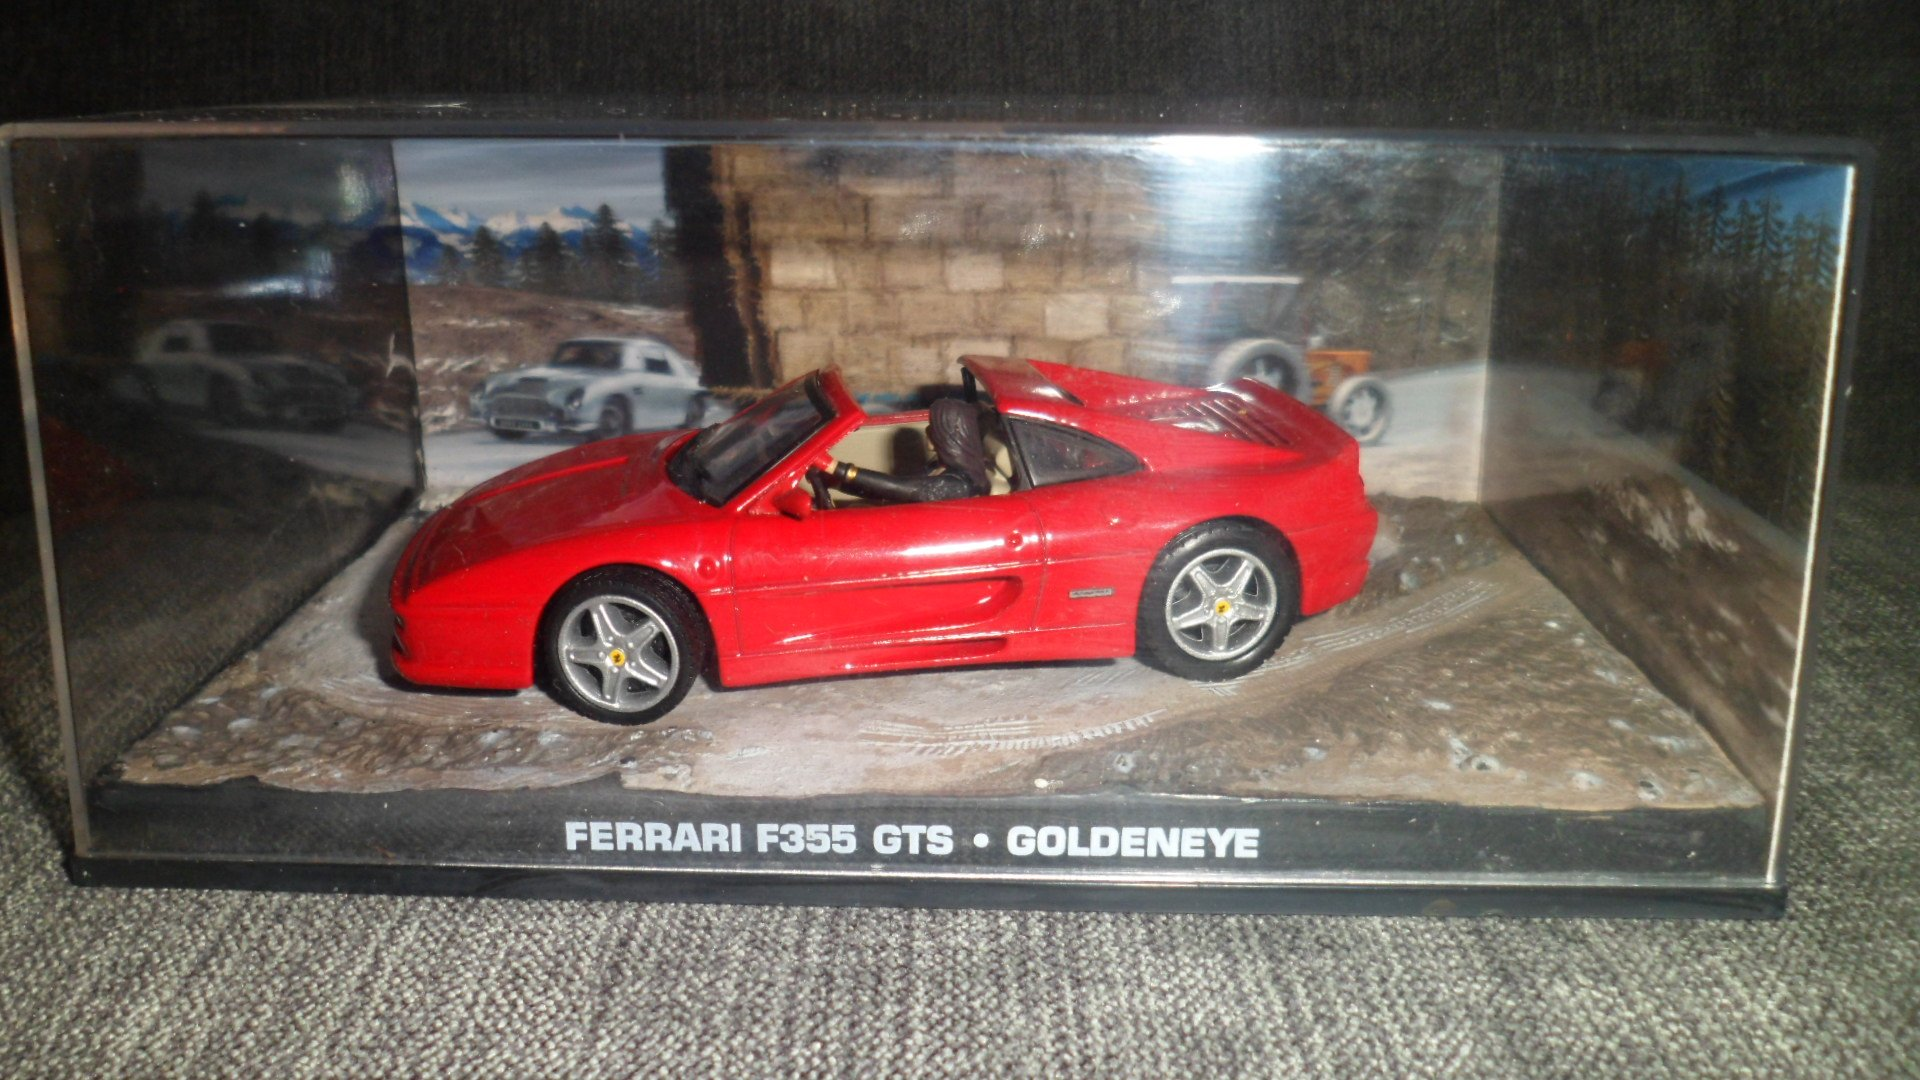 James Bond 007 Goldeneye Red Ferrari F355 Gts Film Scene Car 1 43 Scale Diecast Model Buy Online In Guernsey At Guernsey Desertcart Com Productid 66477883